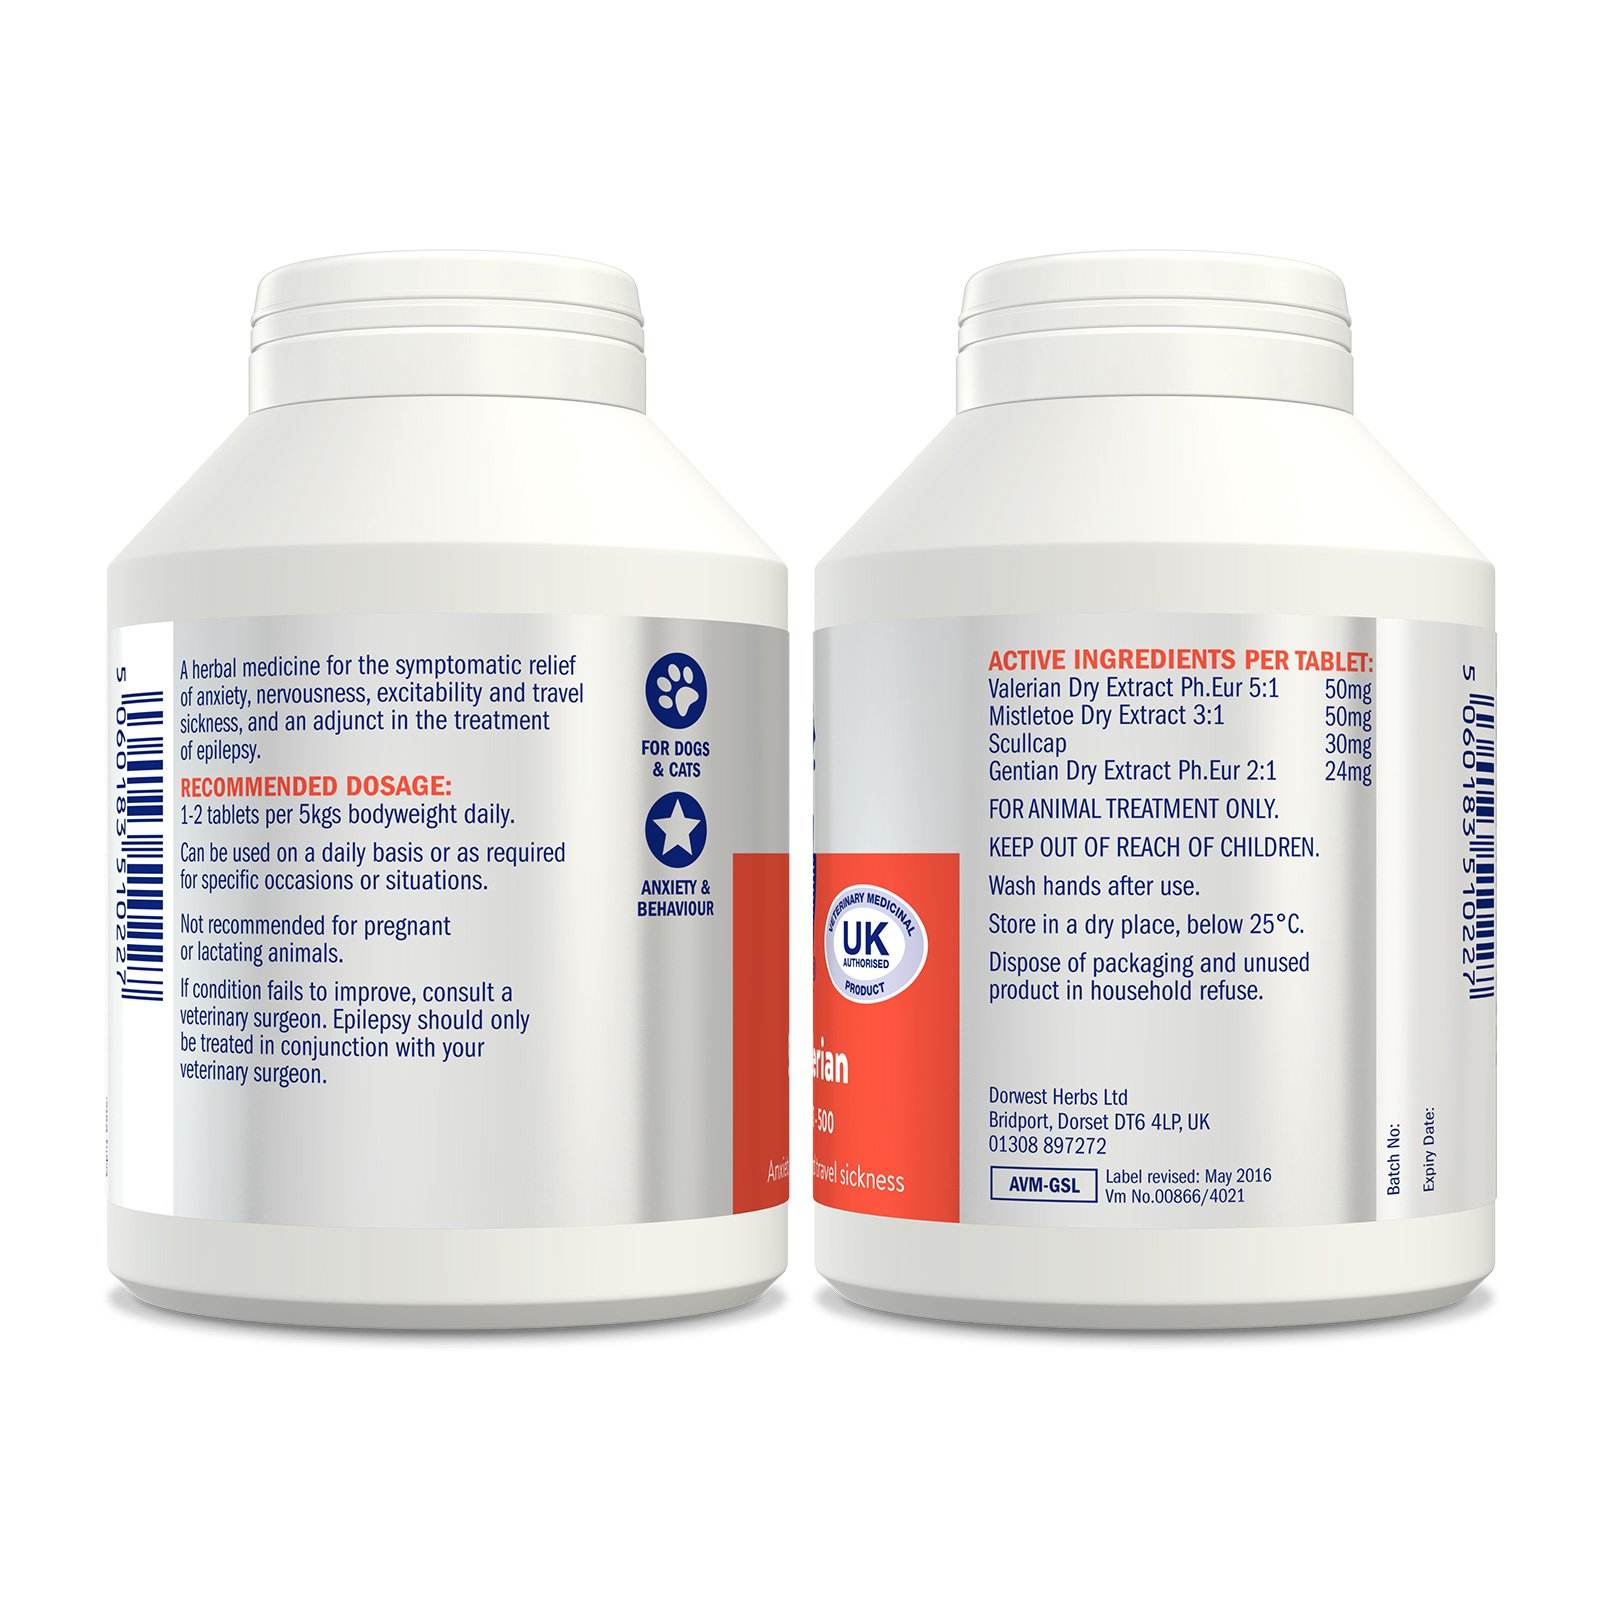 Dorwest Herbs Scullcap And Valerian Tablets For Dogs And Cats 500 Tablets by Dorwest Herbs (Image #6)